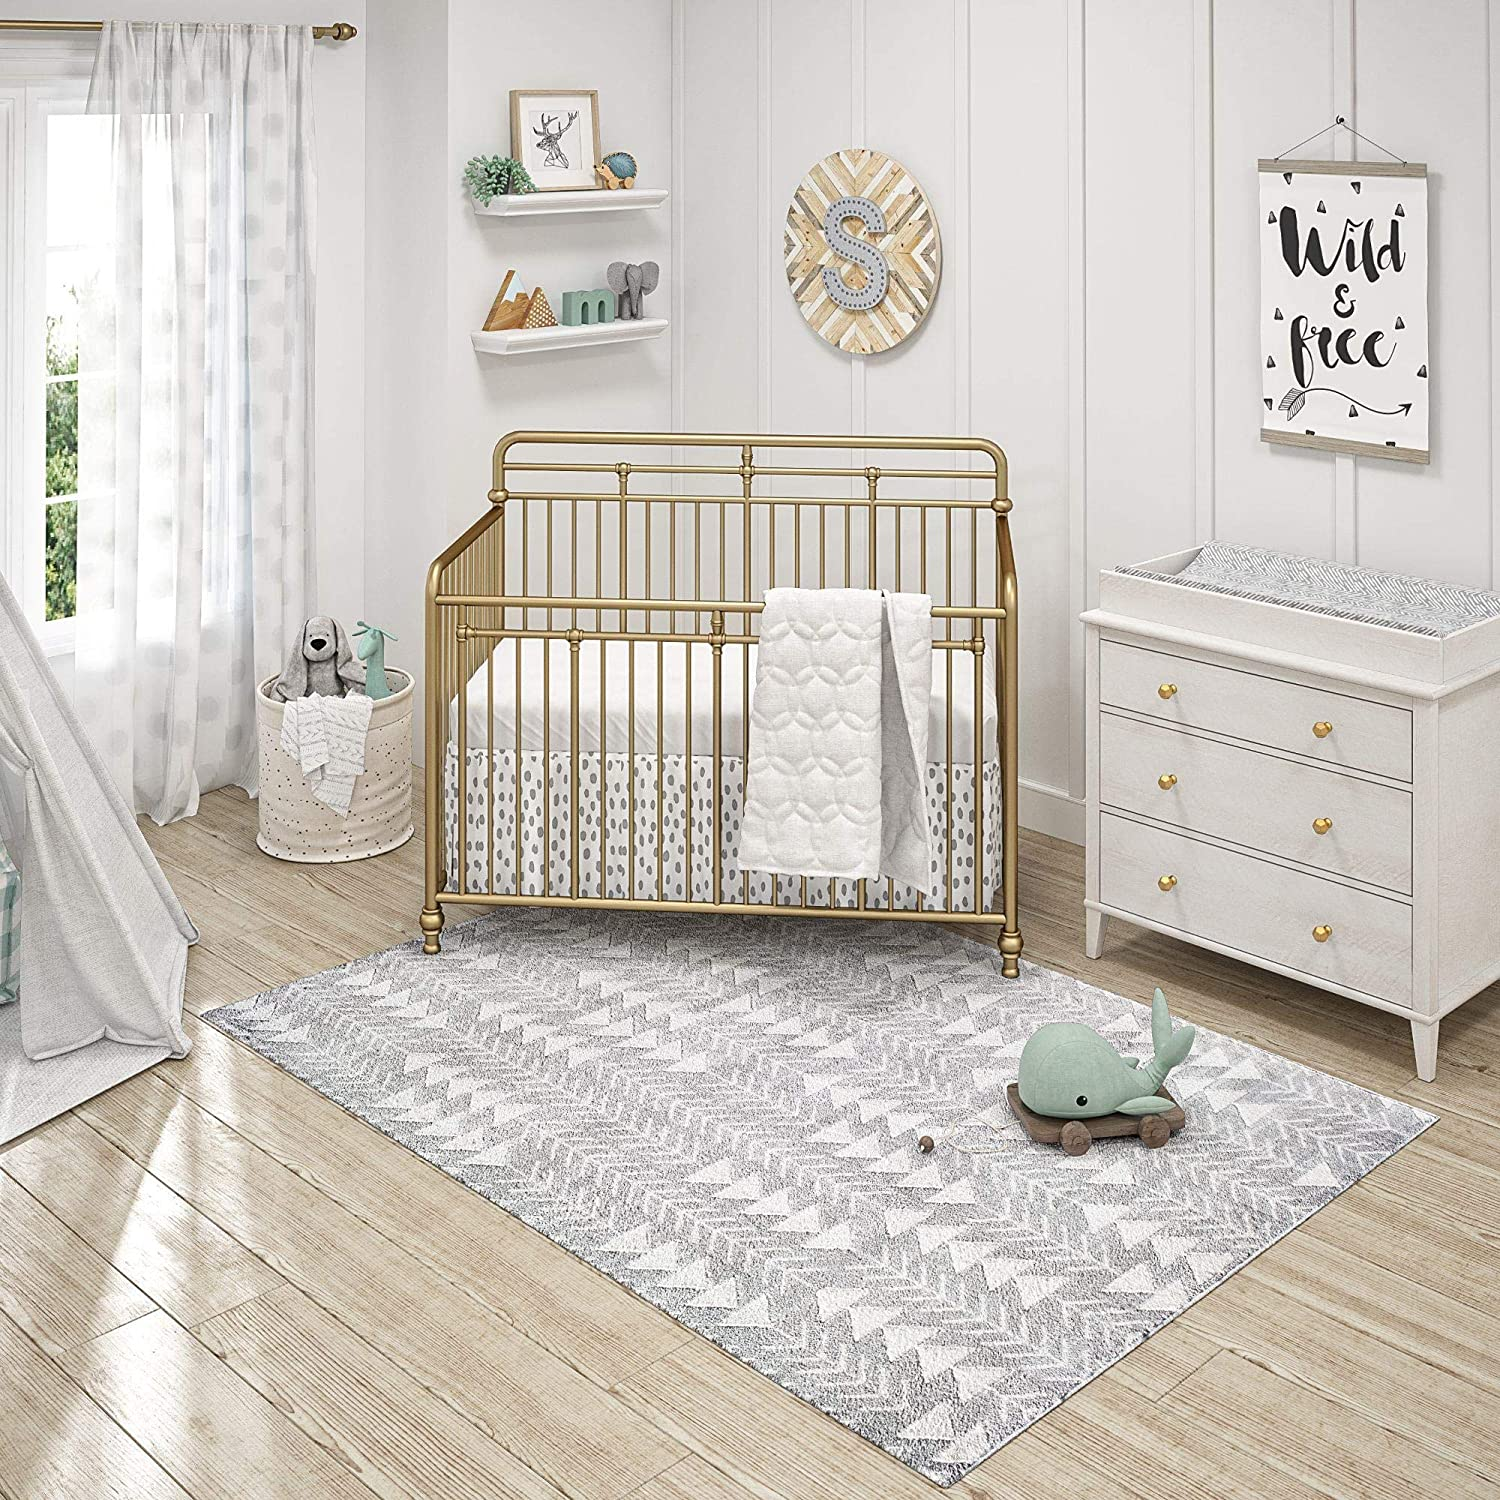 Little Seeds Serenity Archer Safety and trust Gray 10 low-pricing 8x10 x 8 Rugs